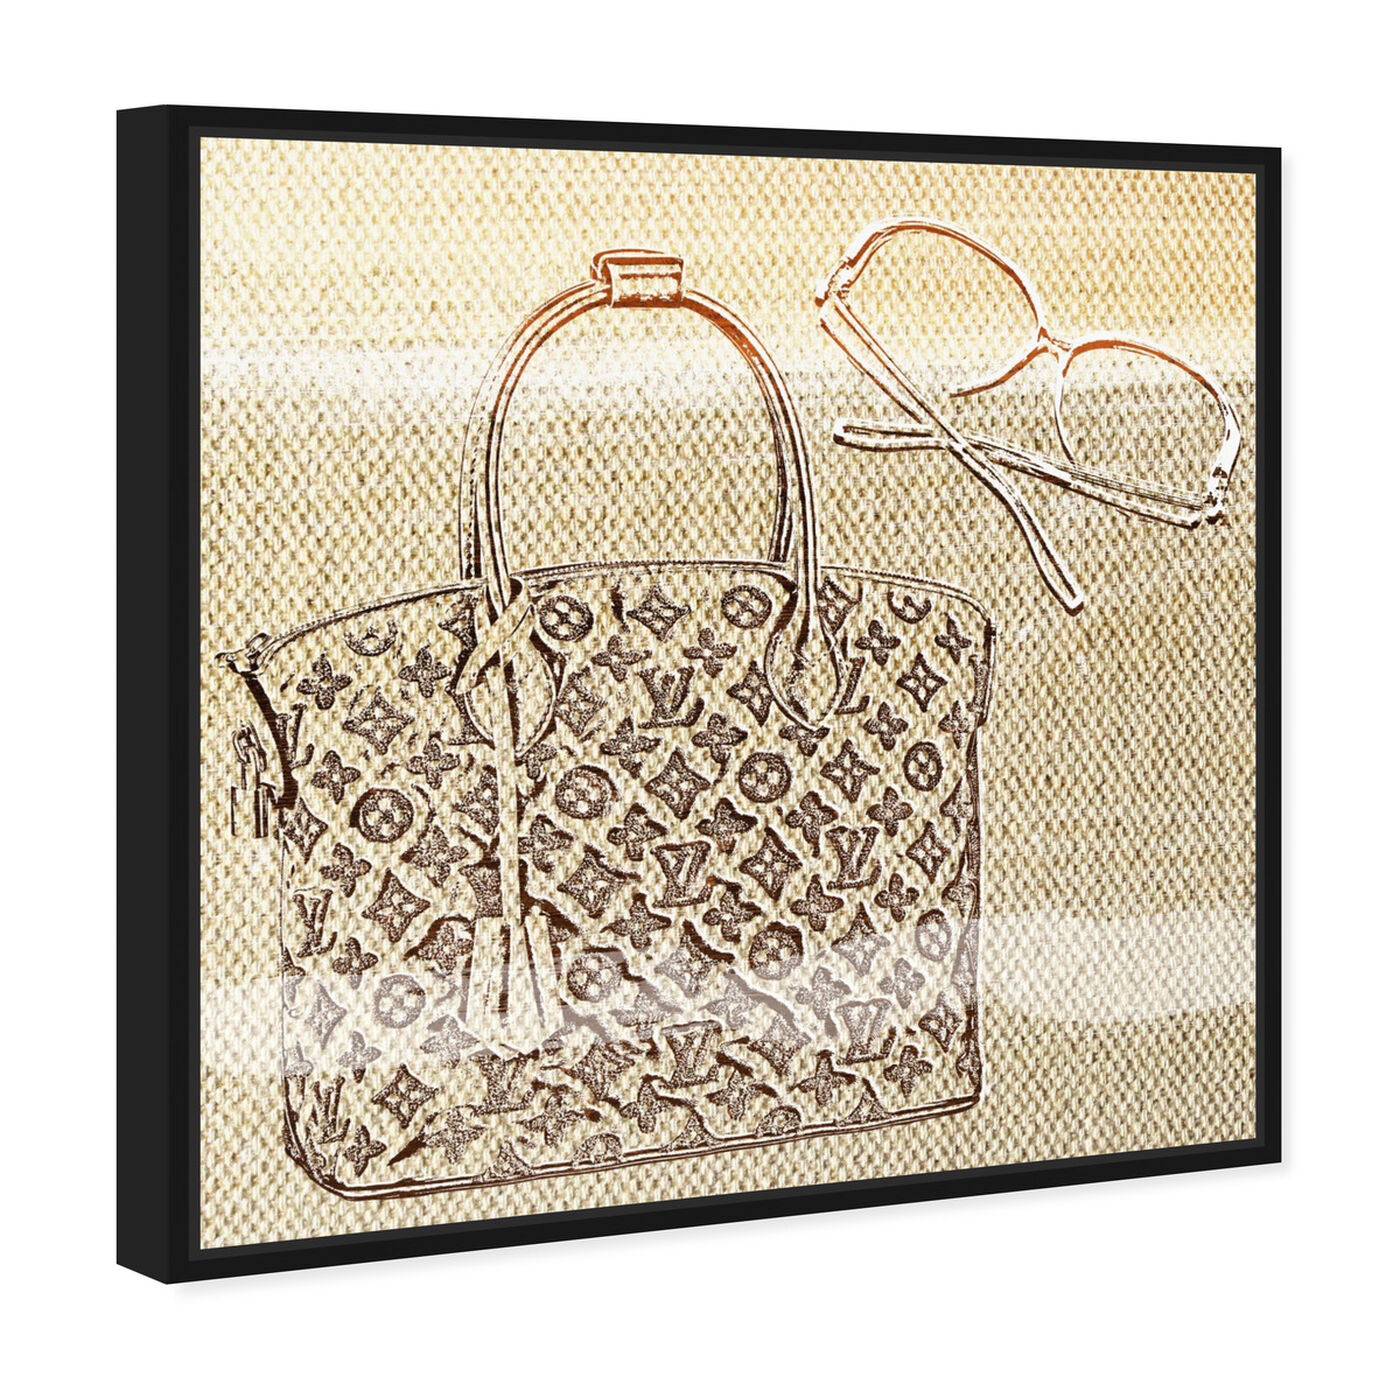 Angled view of Musts featuring fashion and glam and handbags art.